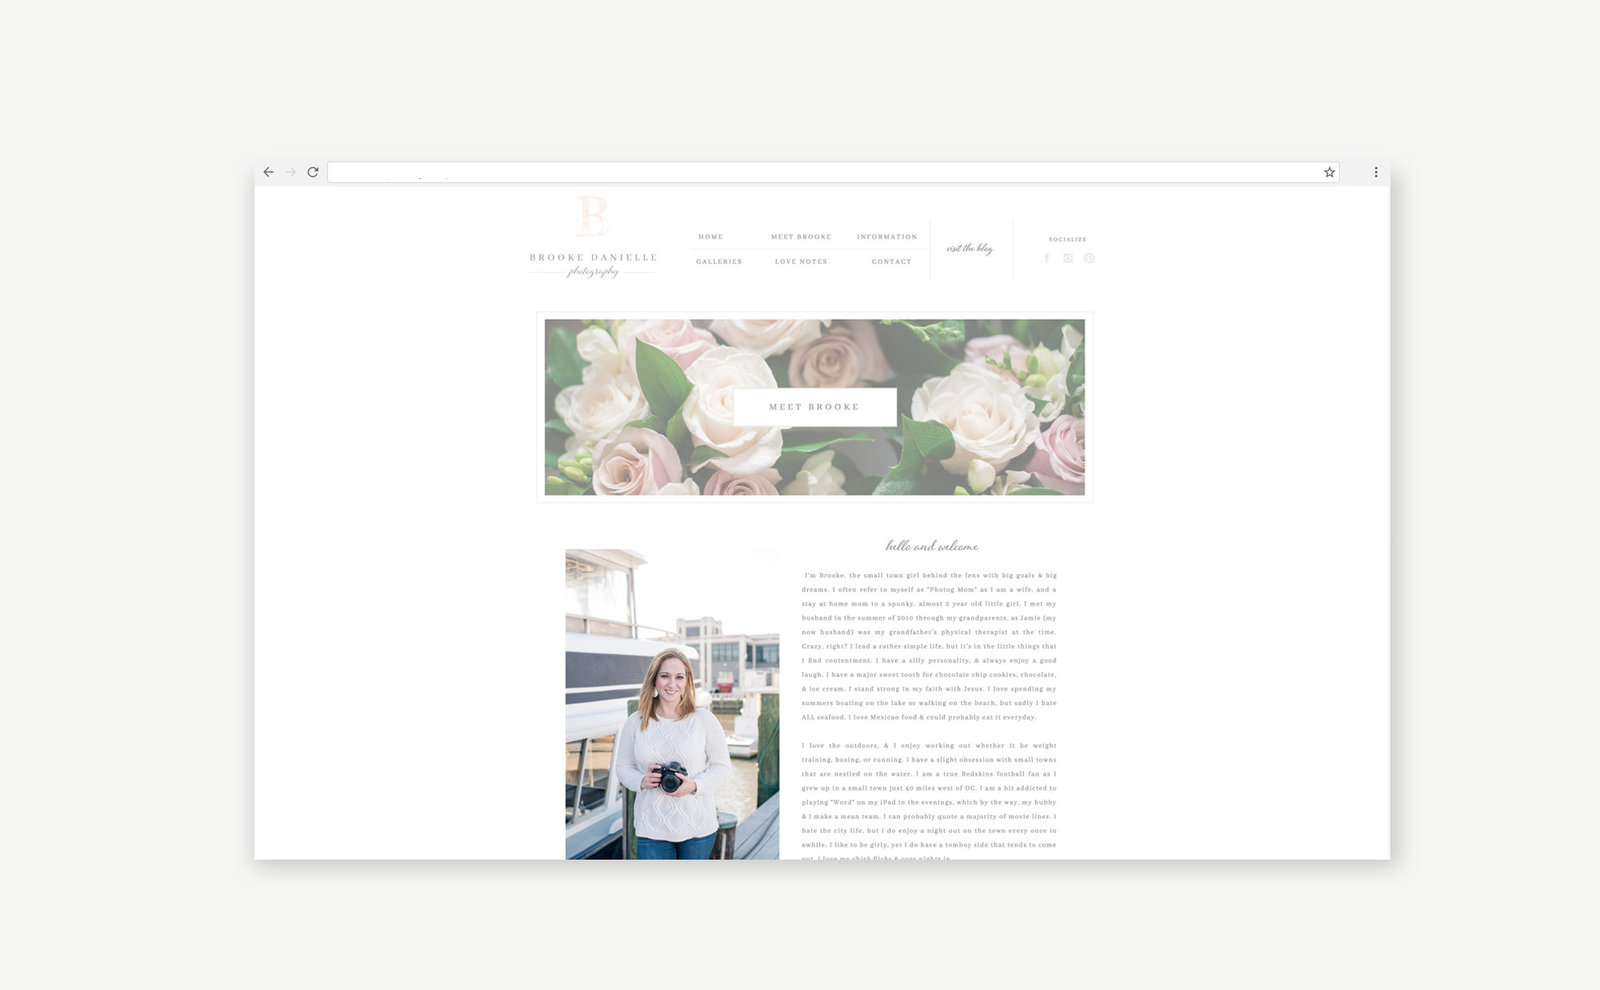 branding-for-photographers-web-design-brooke-danielle-03